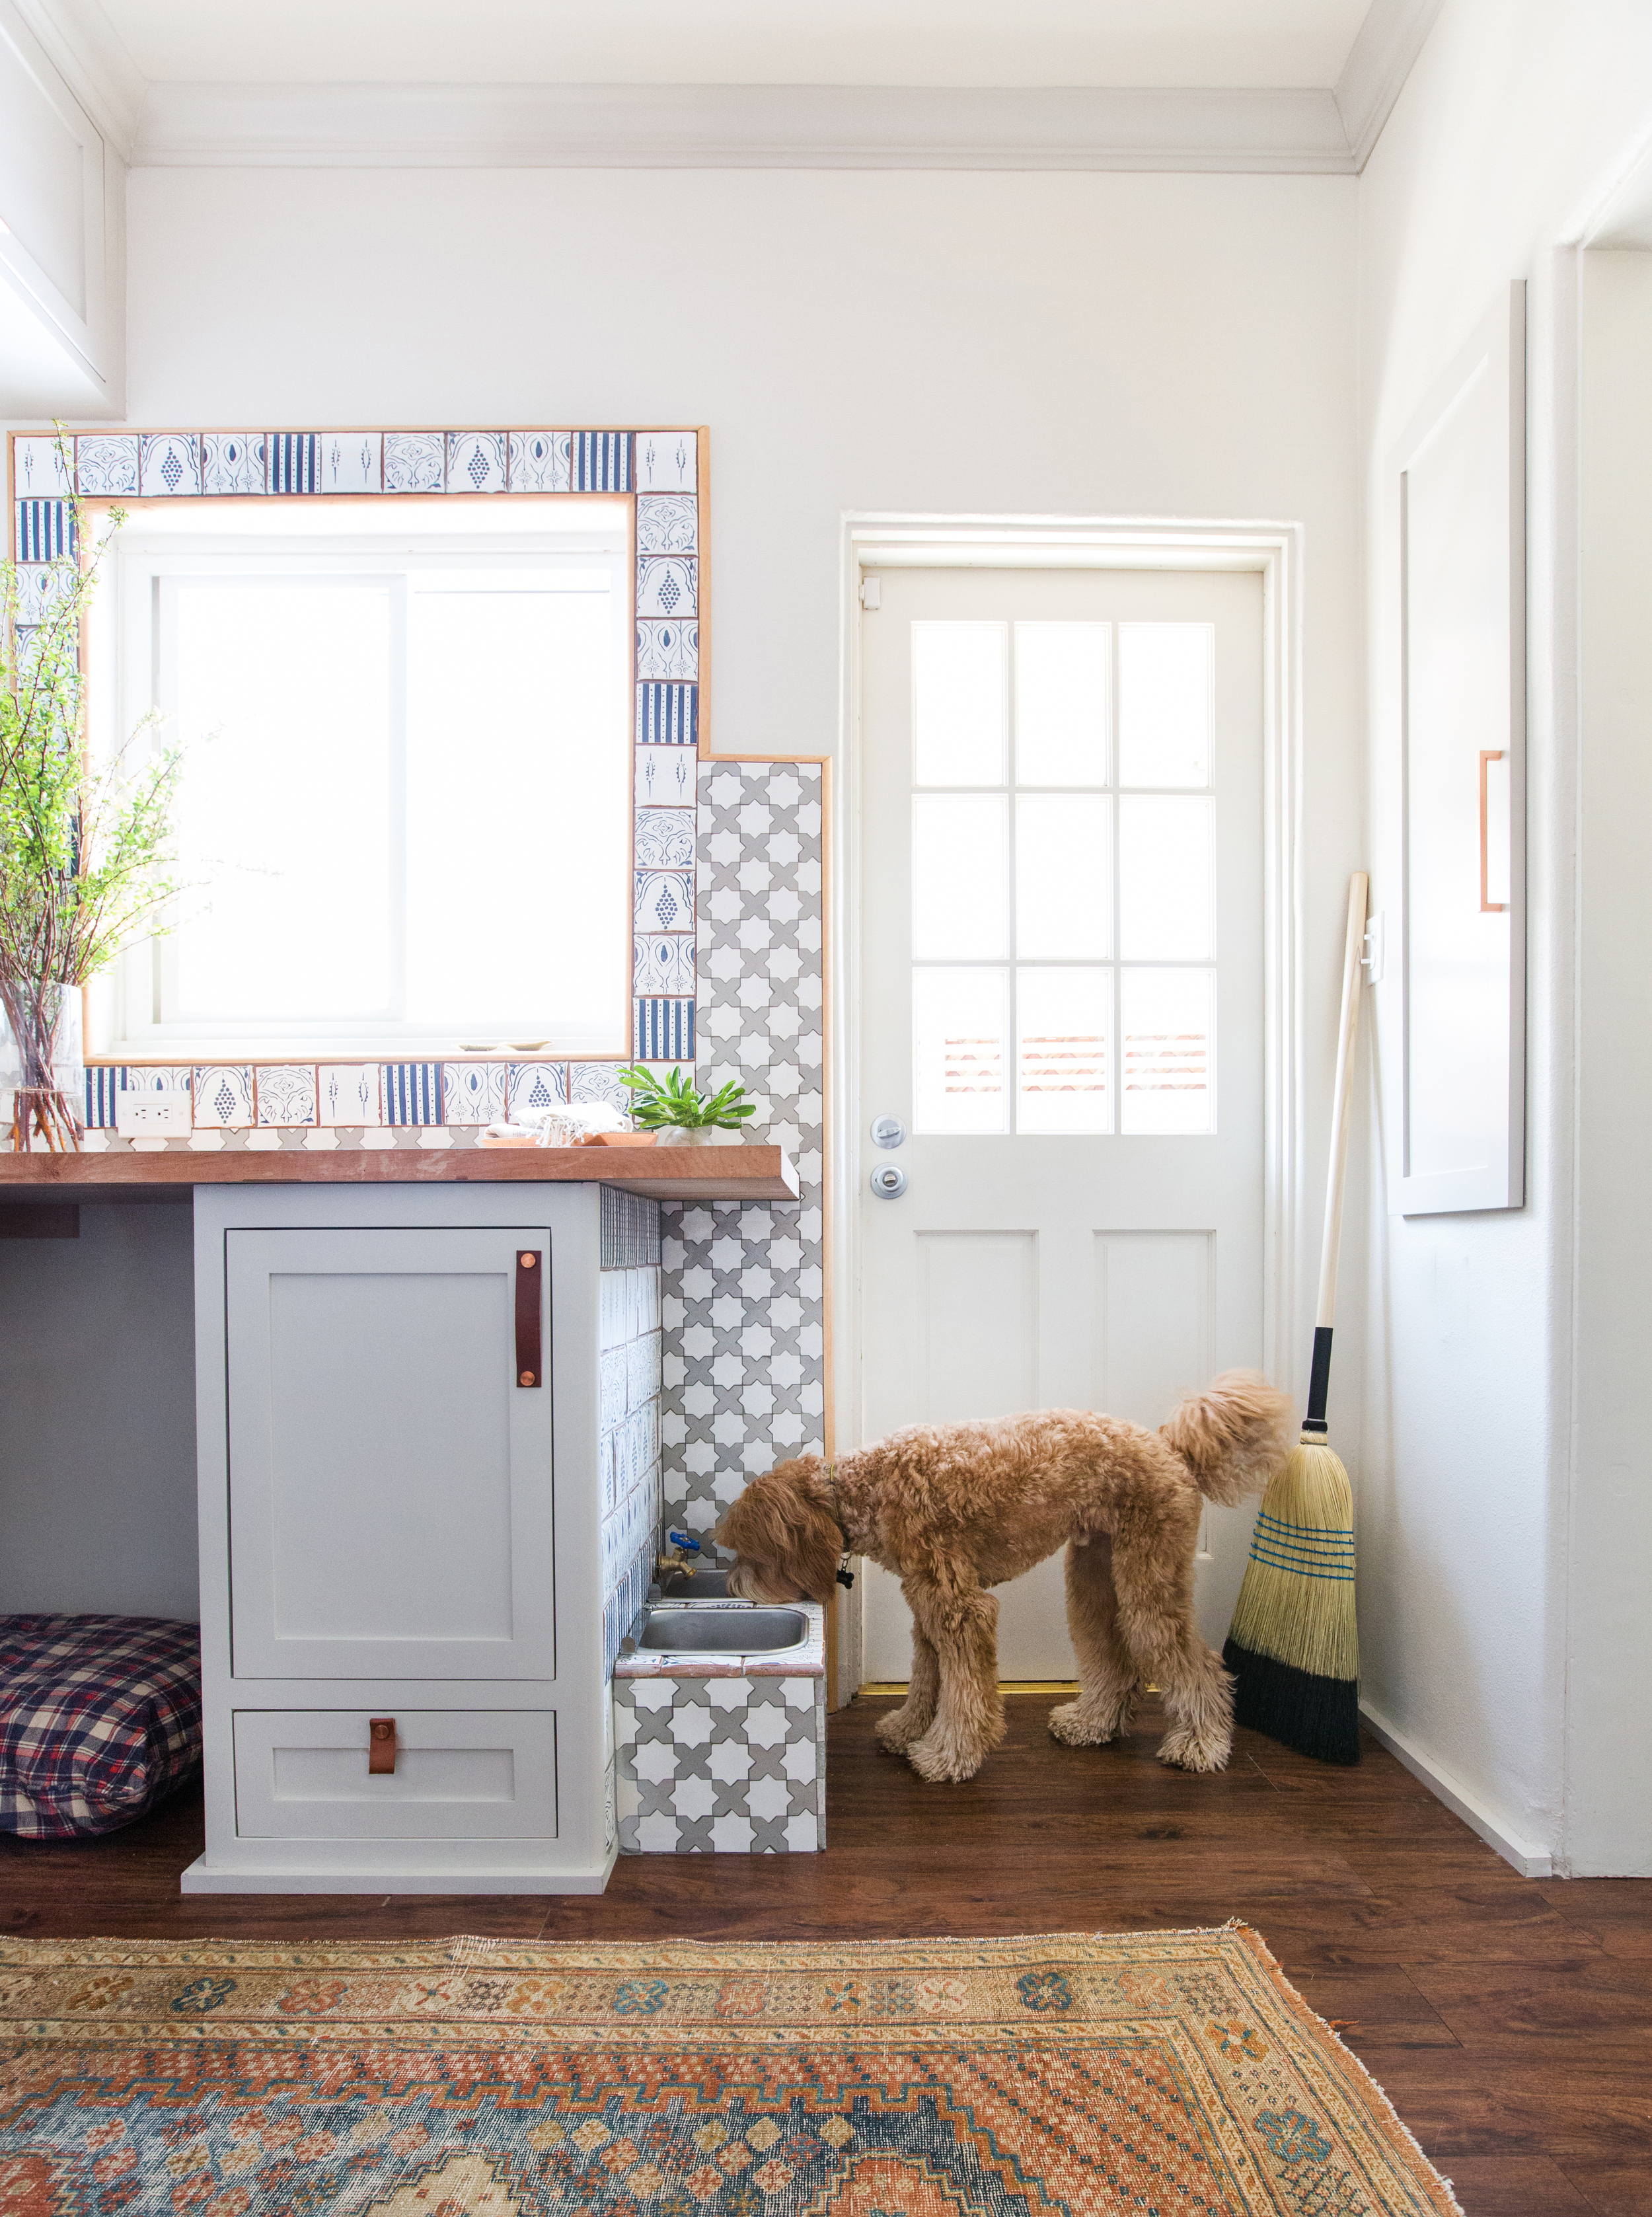 stefanistein-interior-design-laundry-mudroom-petfriendly-custom-tile-luxe-interiors-lifestyle-labradoodle-remodel-rennovation